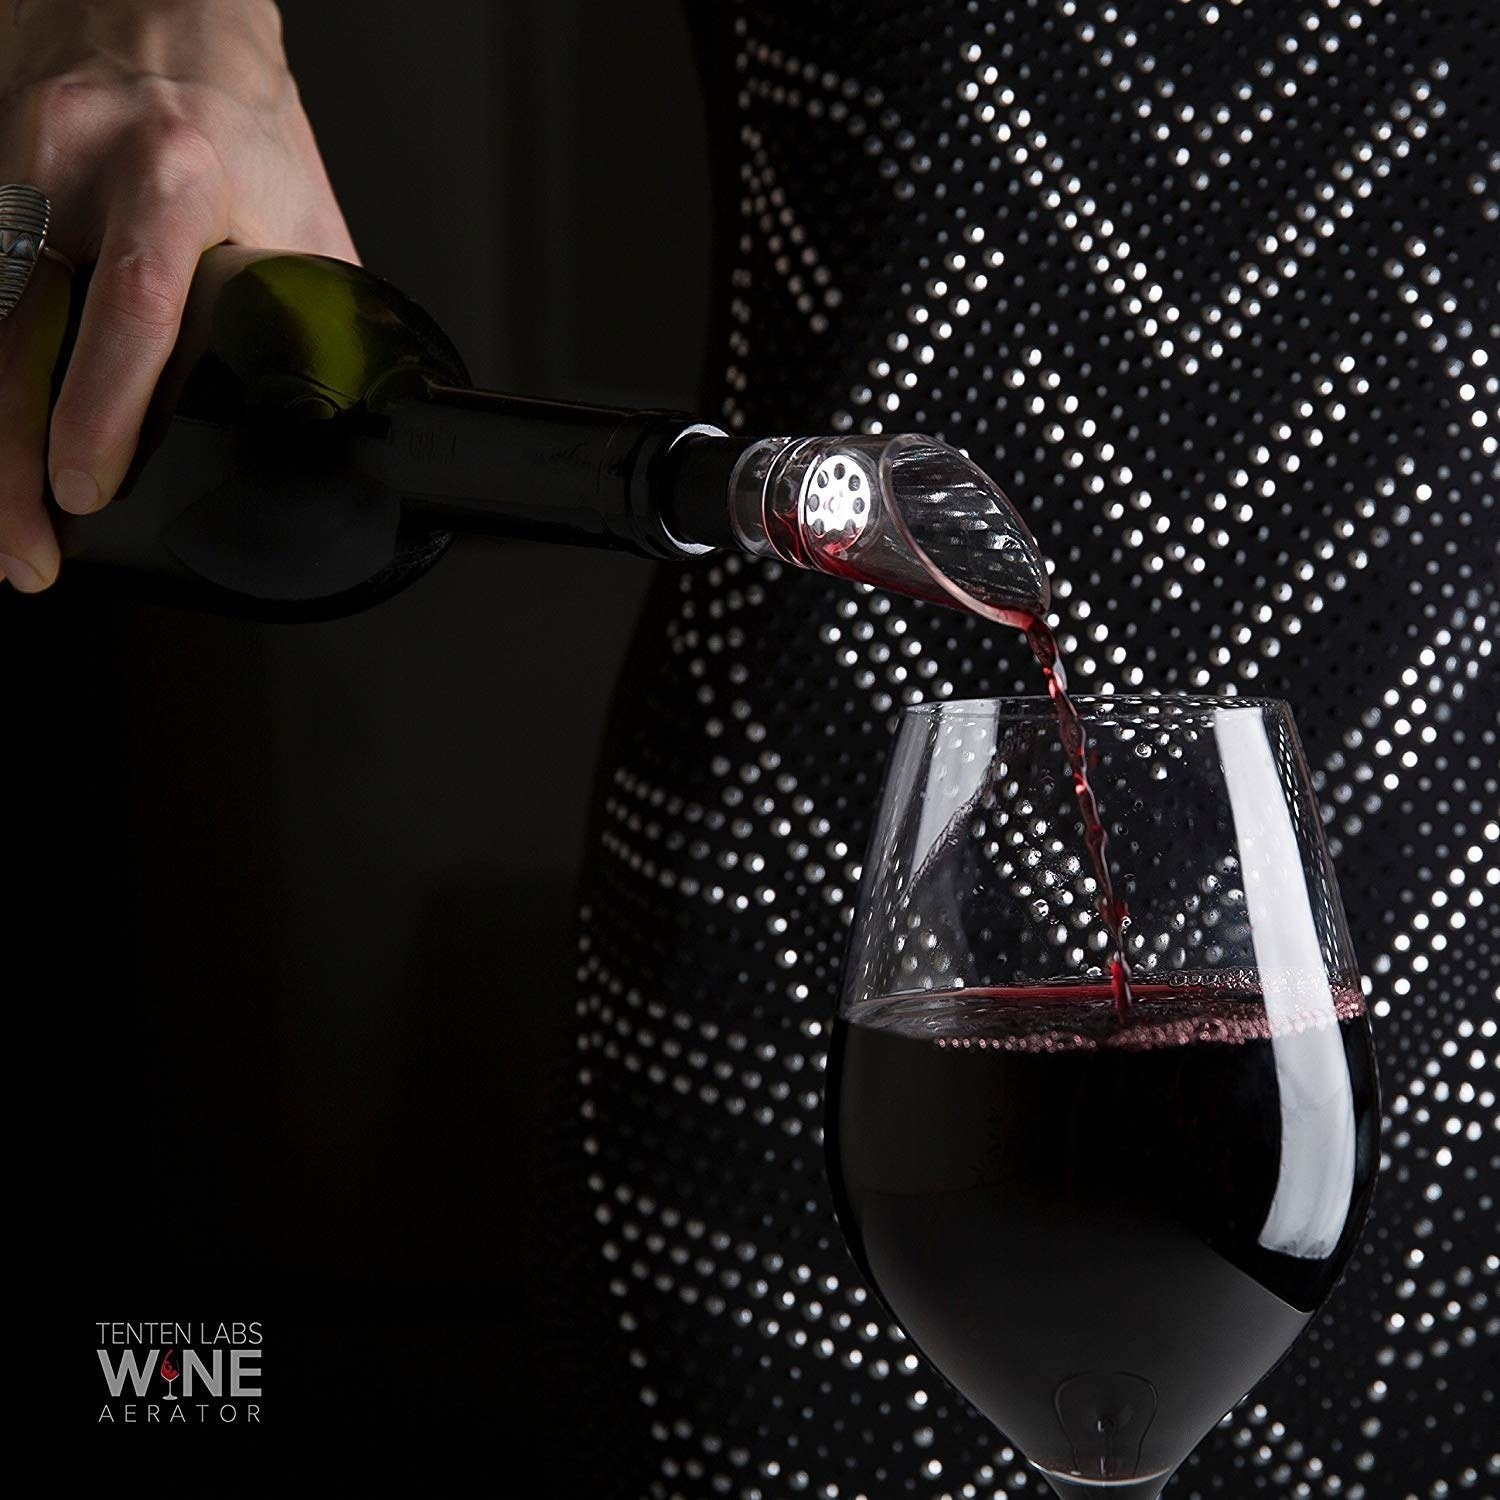 A person pouring red wine through the aerator into a glass